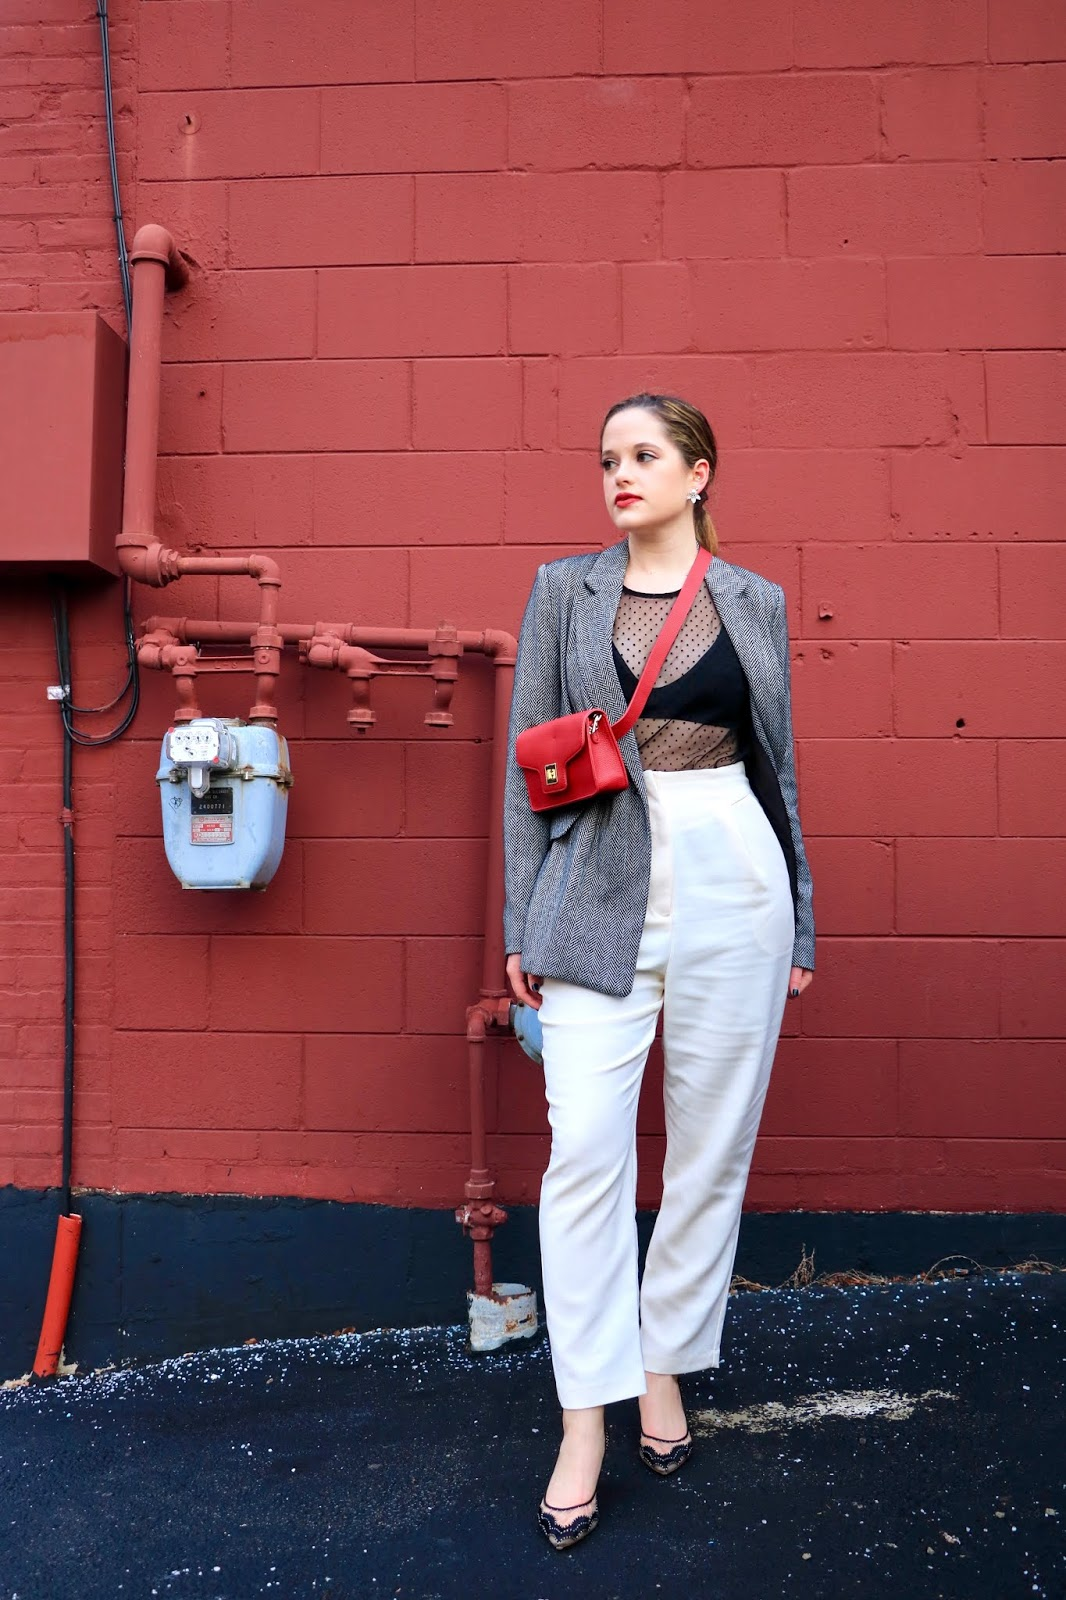 Nyc fashion blogger Kathleen Harper wearing a date night outfit with pants.